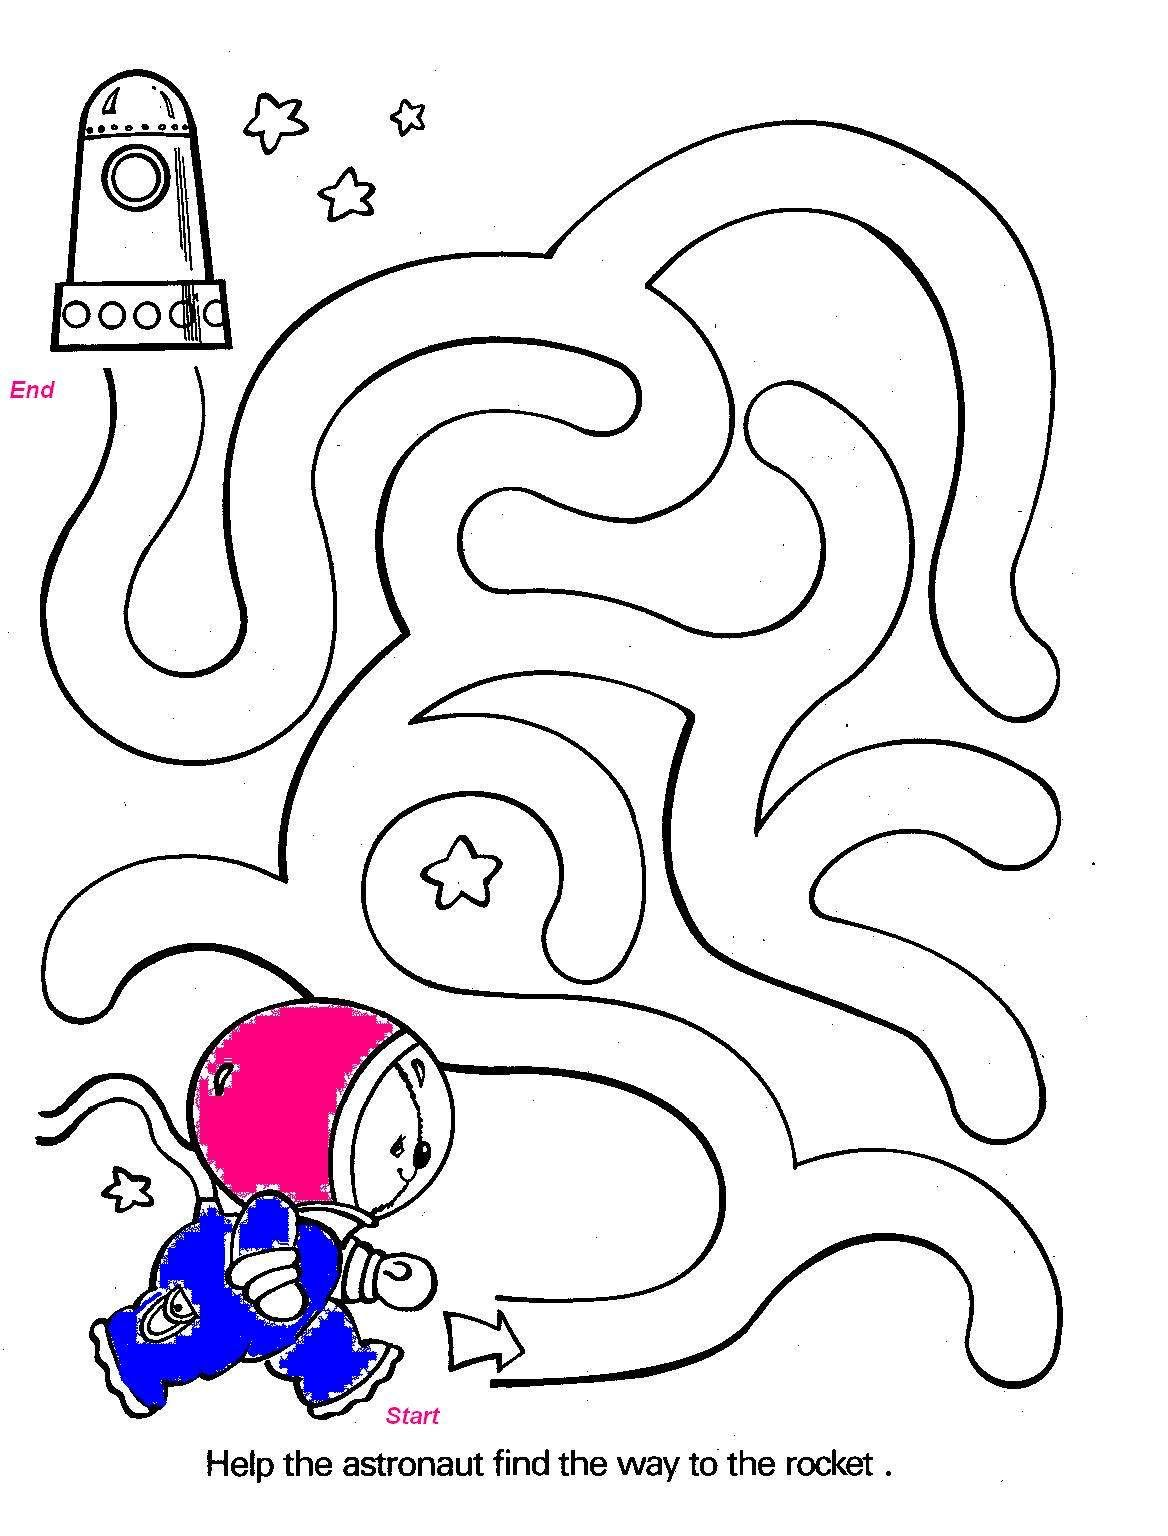 rocket coloring sheet mkblueridge mackid macaronikidblueridge